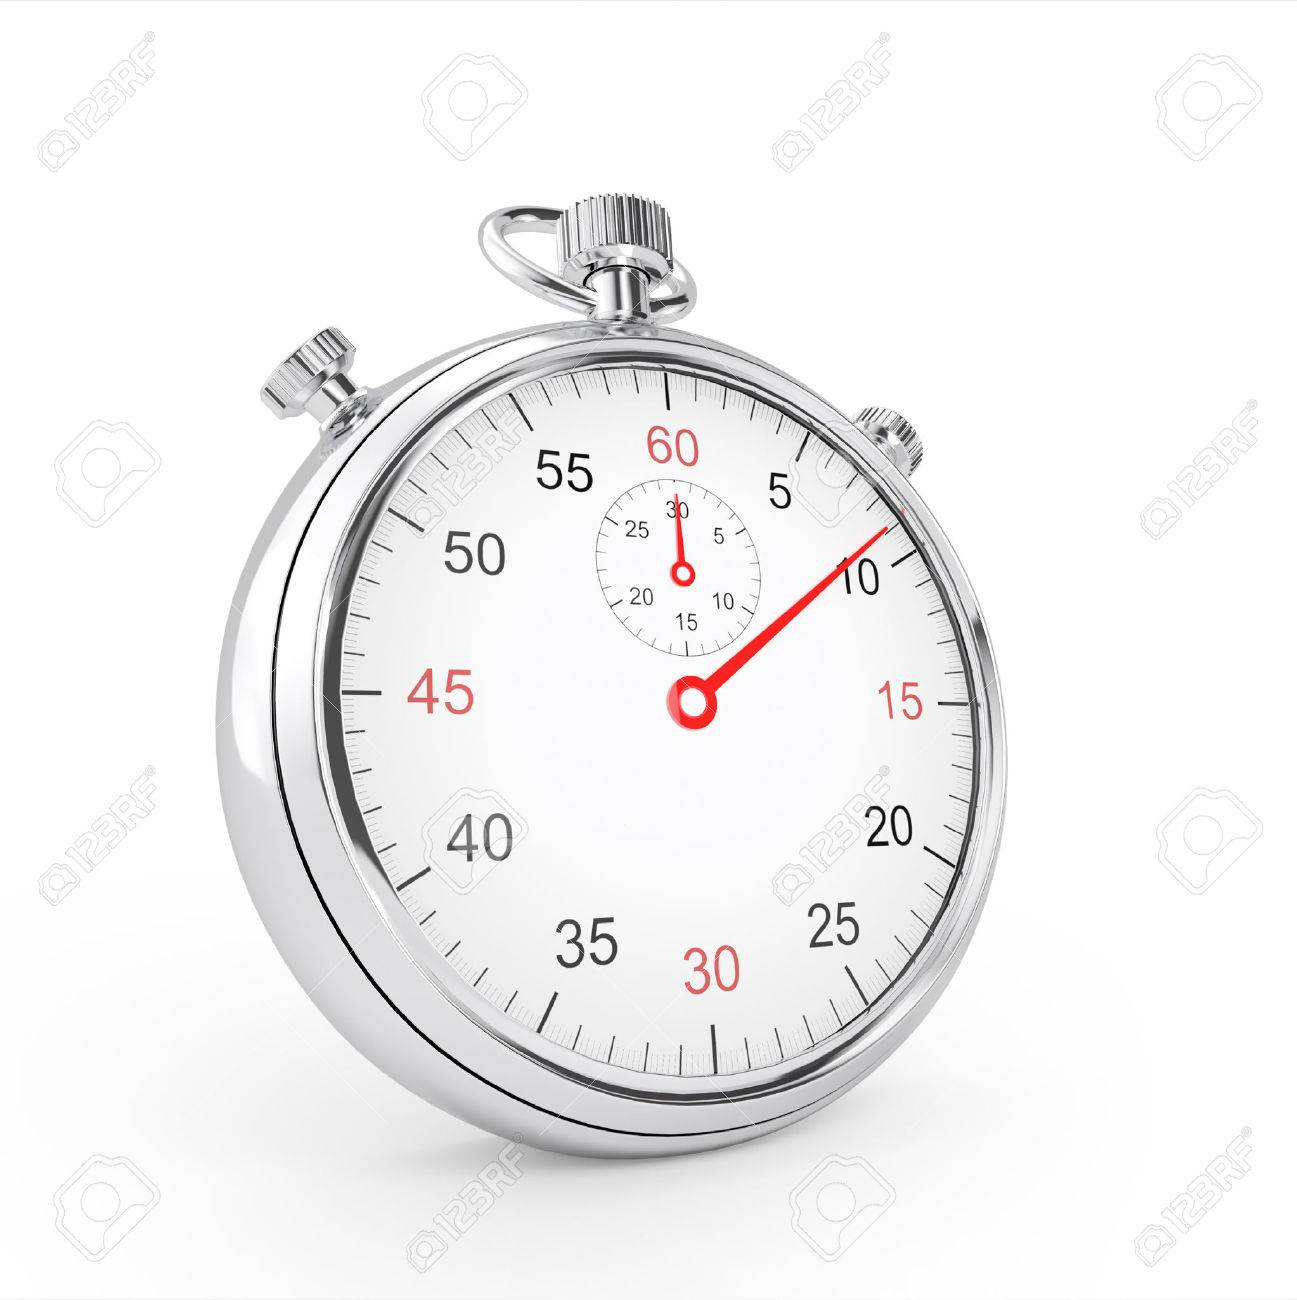 Sport stopwatch isolated over white background Stock Photo - 41621512